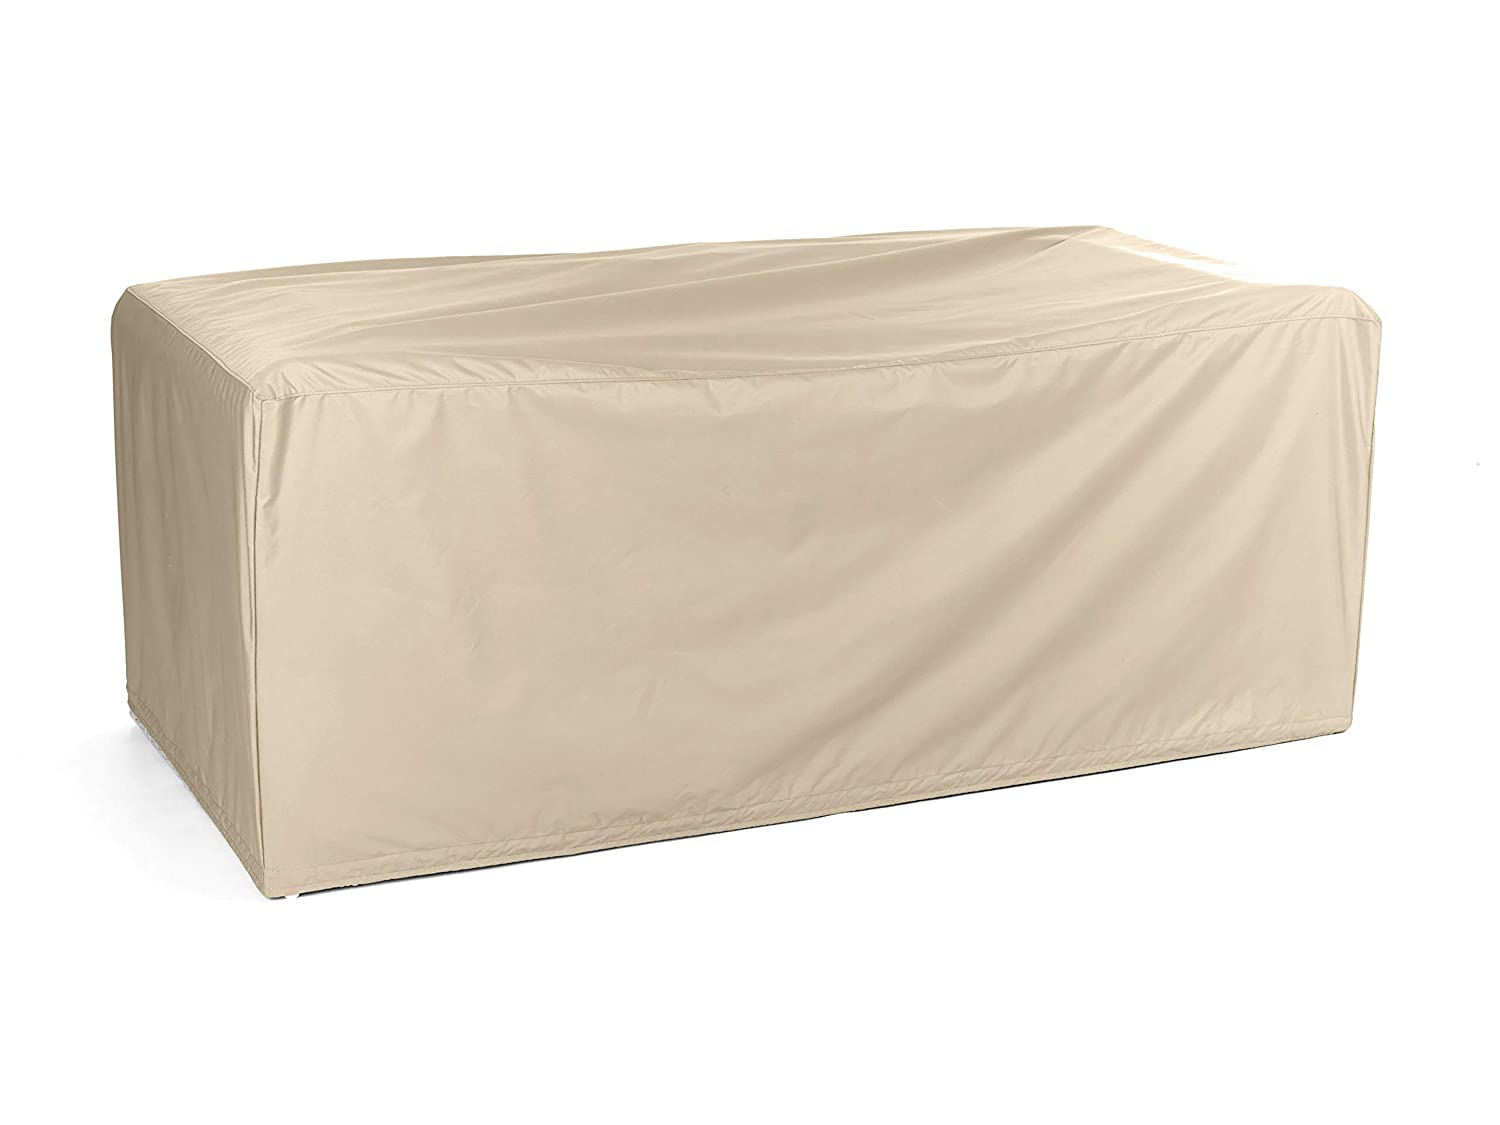 Covermates Modular Sectional Sofa Cover Heavy Duty Material – Water and Weather Resistant – Patio Furniture Covers – Khaki